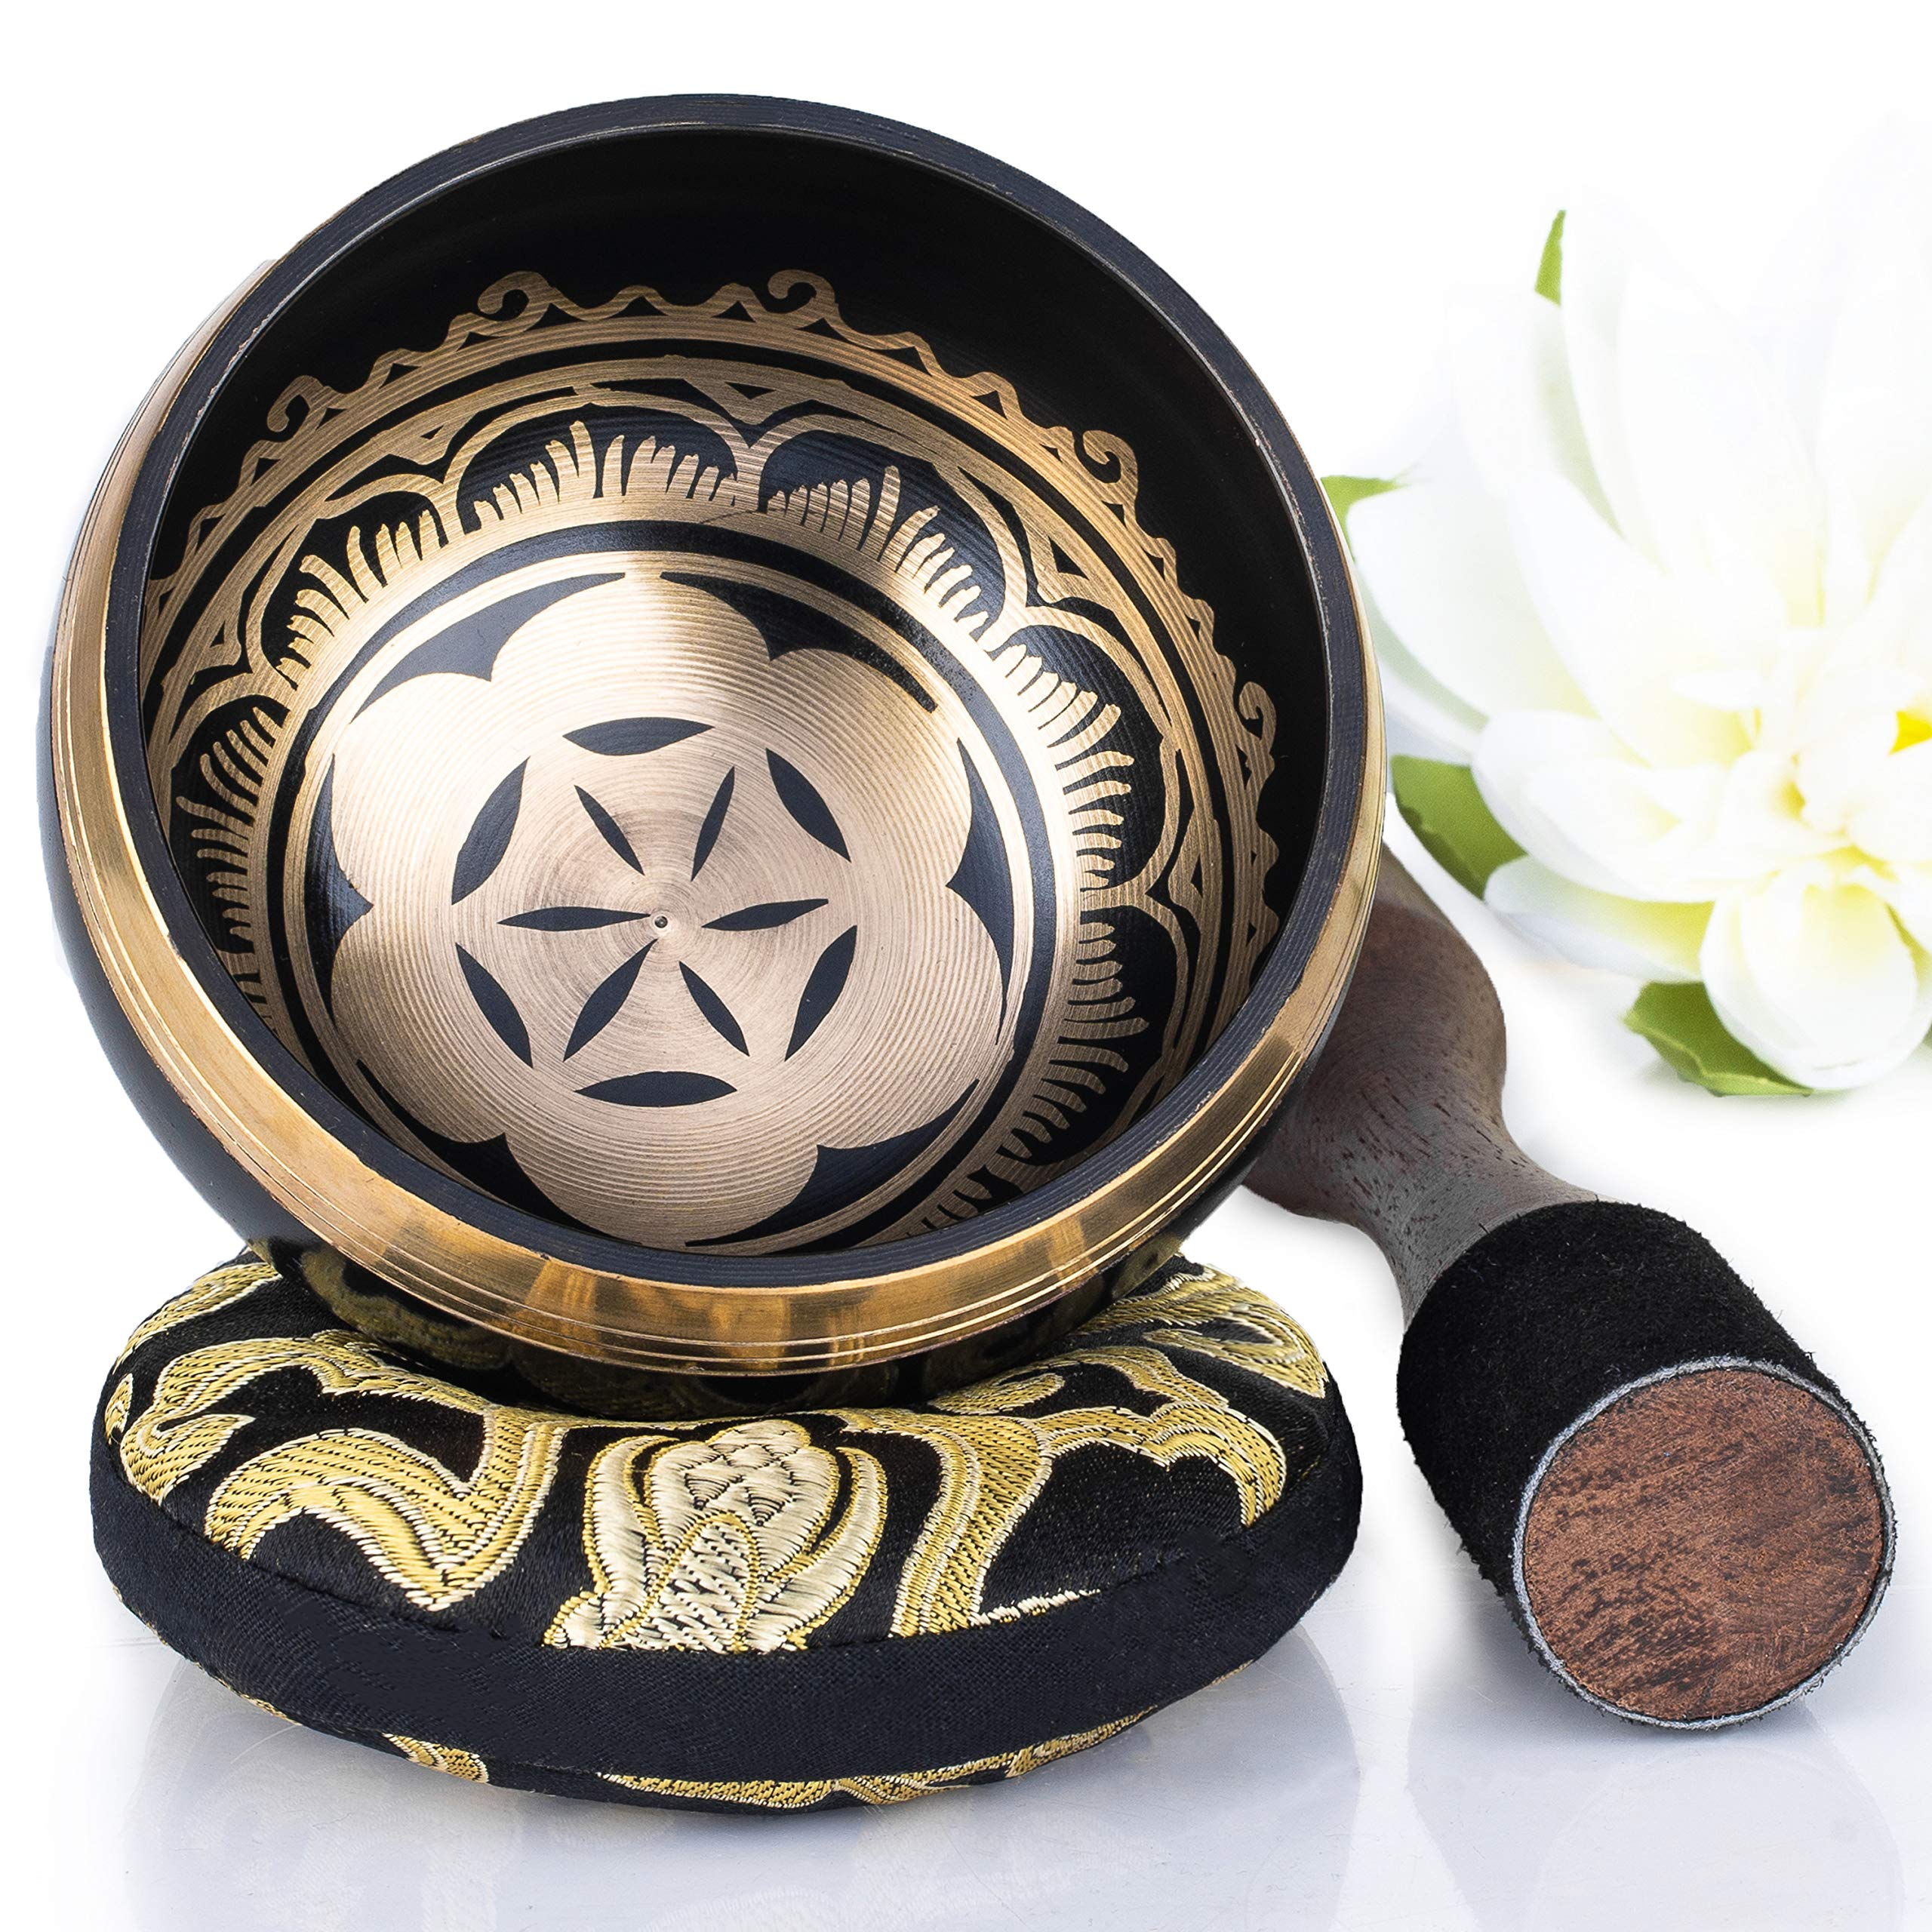 Silent Mind ~ Tibetan Singing Bowl Set ~ Power and Strength Design ~ With Dual Surface Mallet and Silk Cushion ~ Promotes Peace, Chakra Healing, and Mindfulness ~ Exquisite Gift by Silent Mind